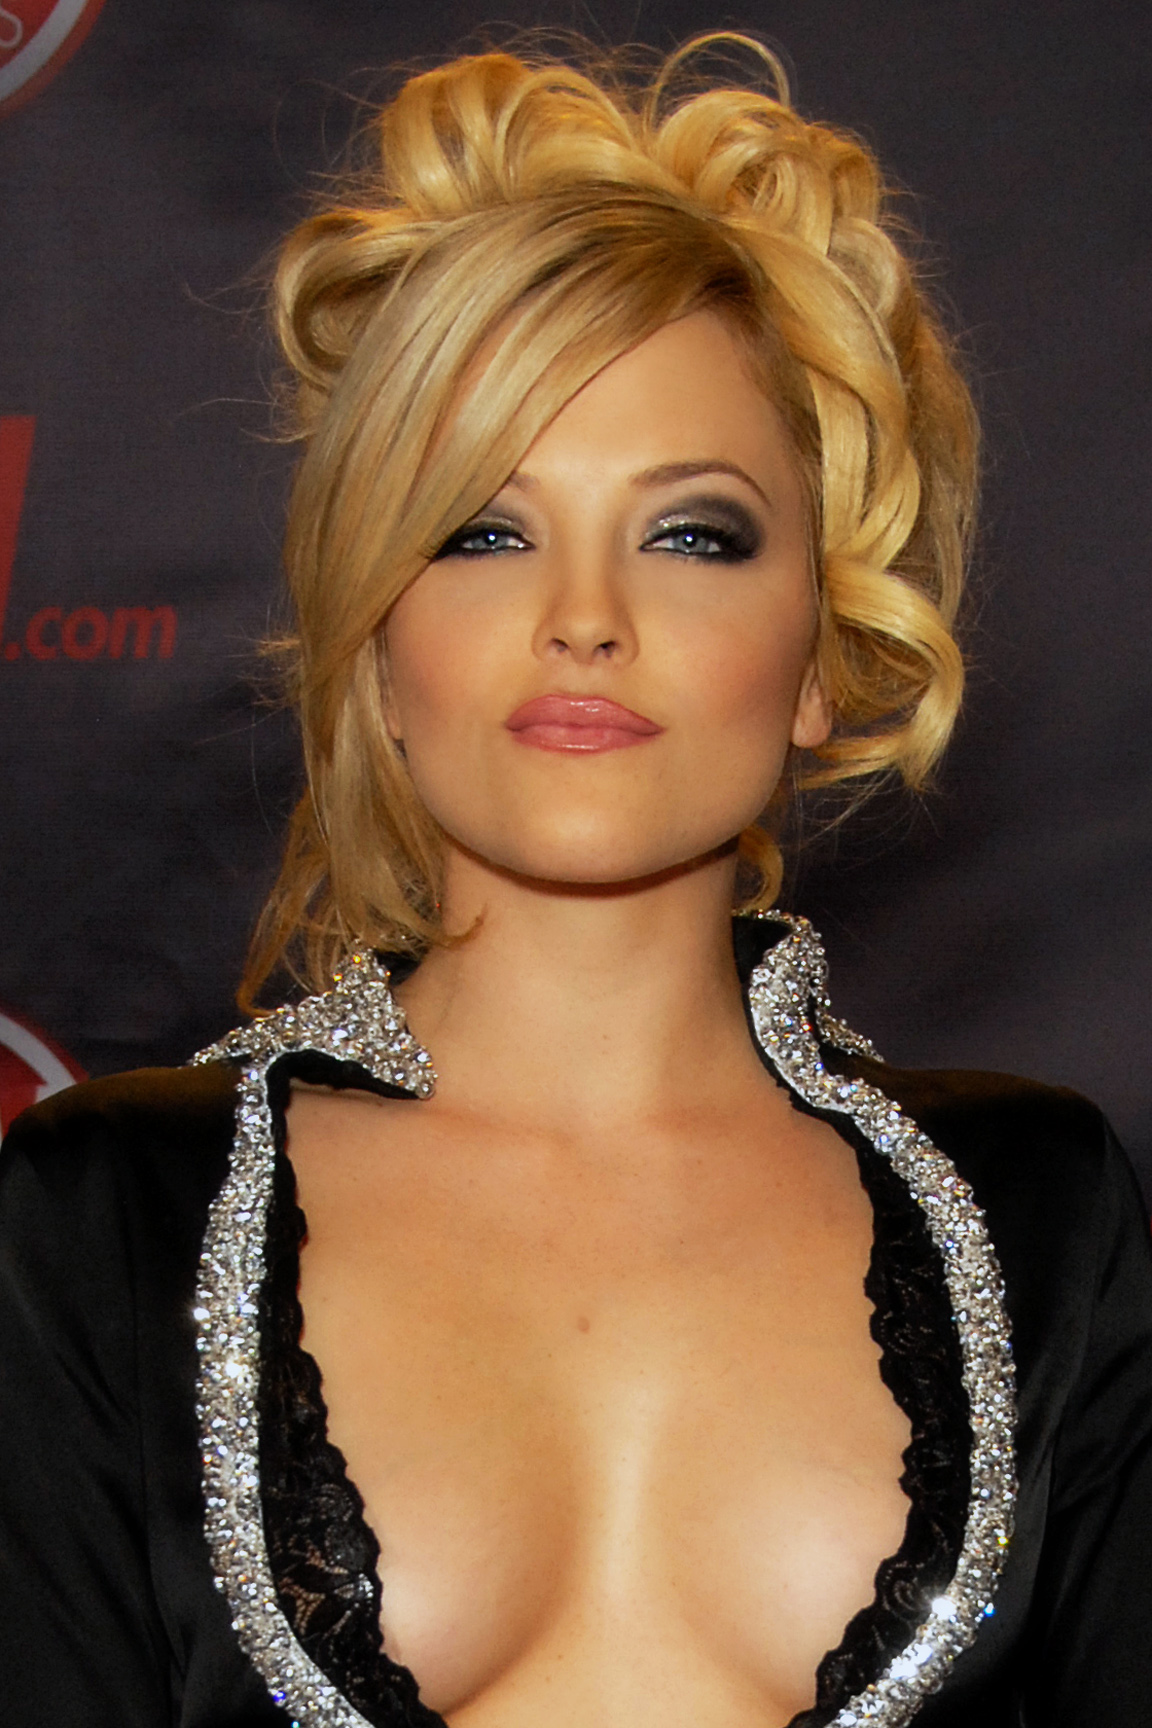 Images Alexis Texas nude (11 photo), Tits, Paparazzi, Feet, bra 2006